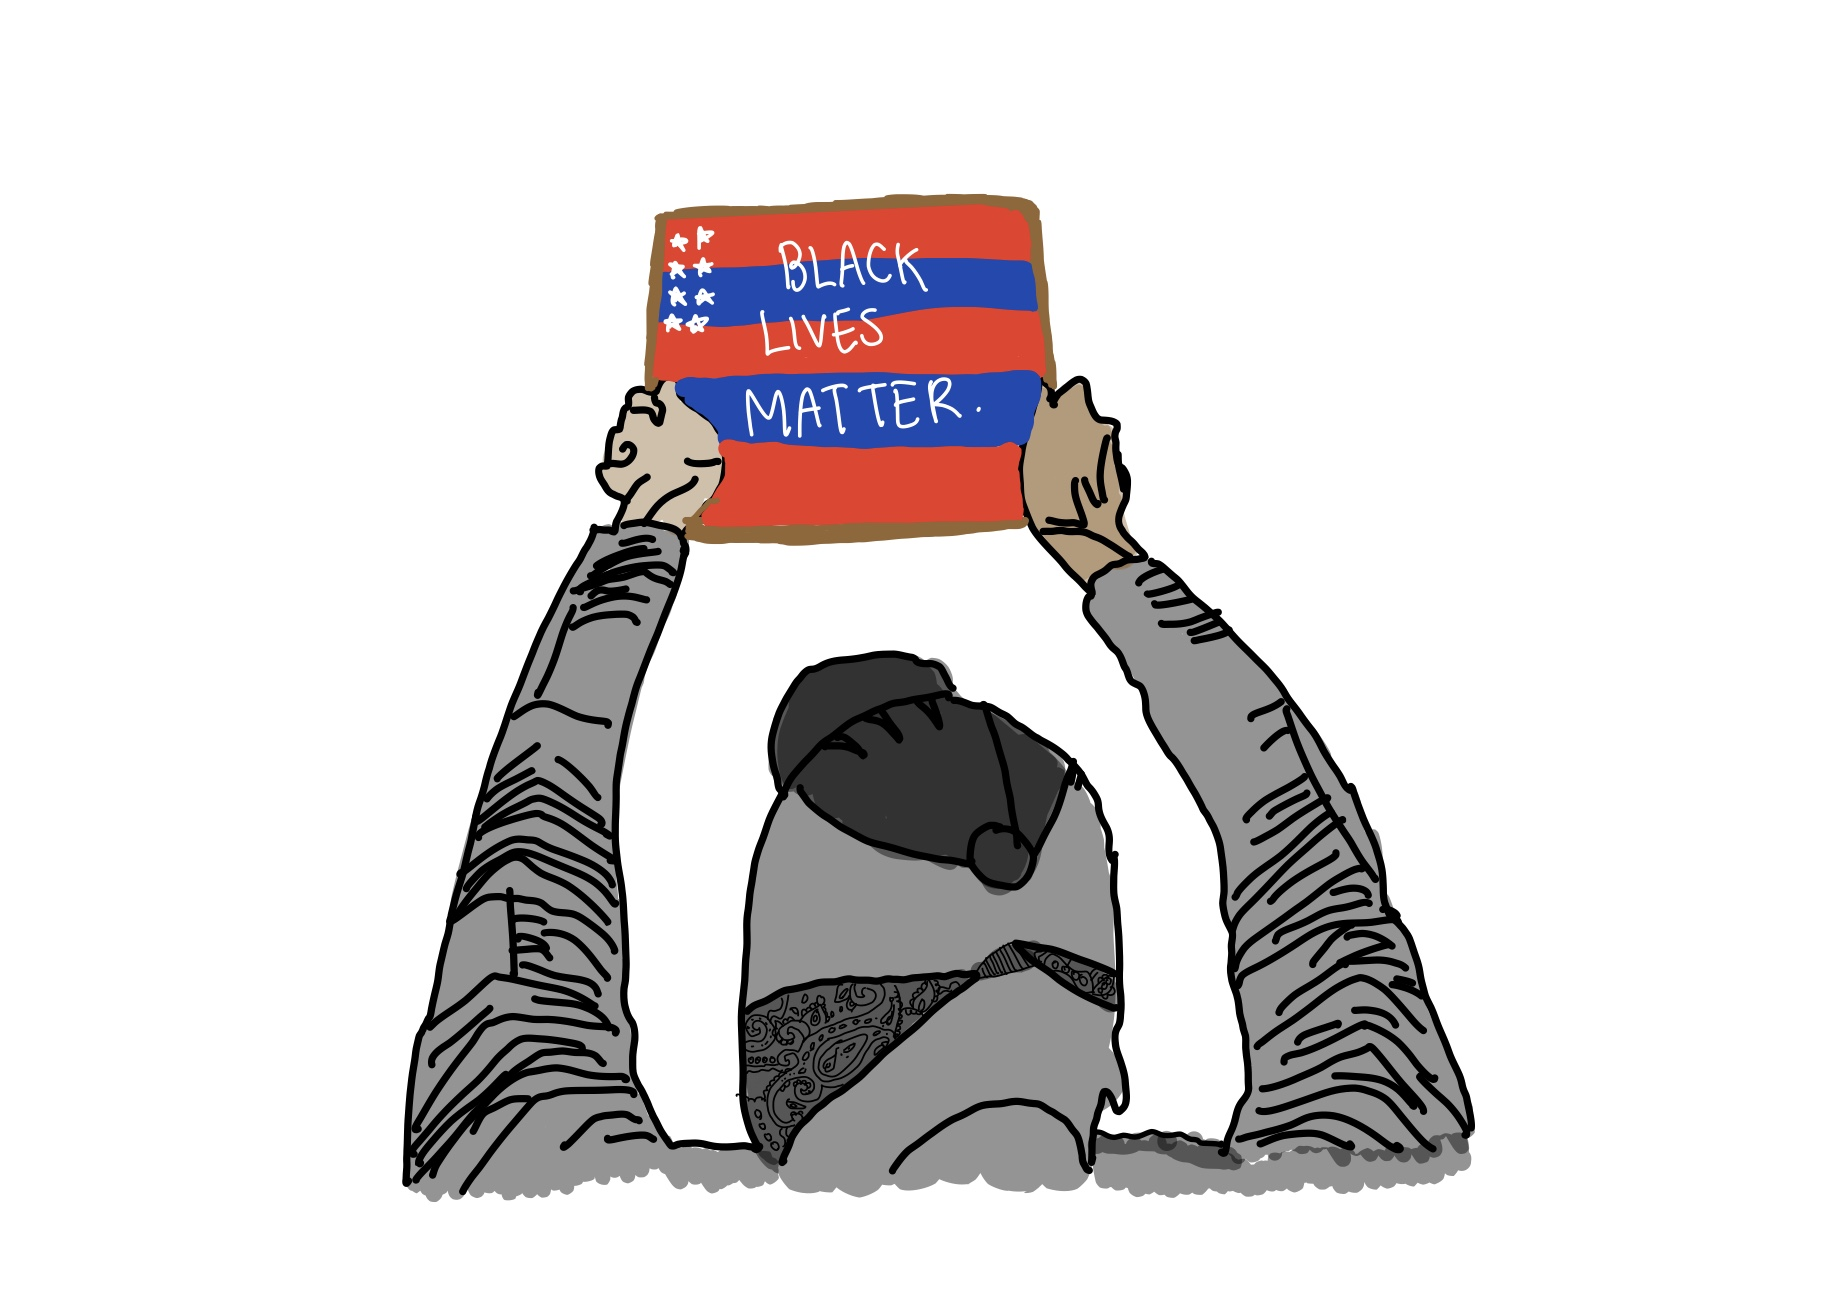 """This shows the people of the black community protesting for black lives matter. By illustrating an American flag on the poster saying """"black lives matter"""" it describes that America should be united and treat everyone equally."""